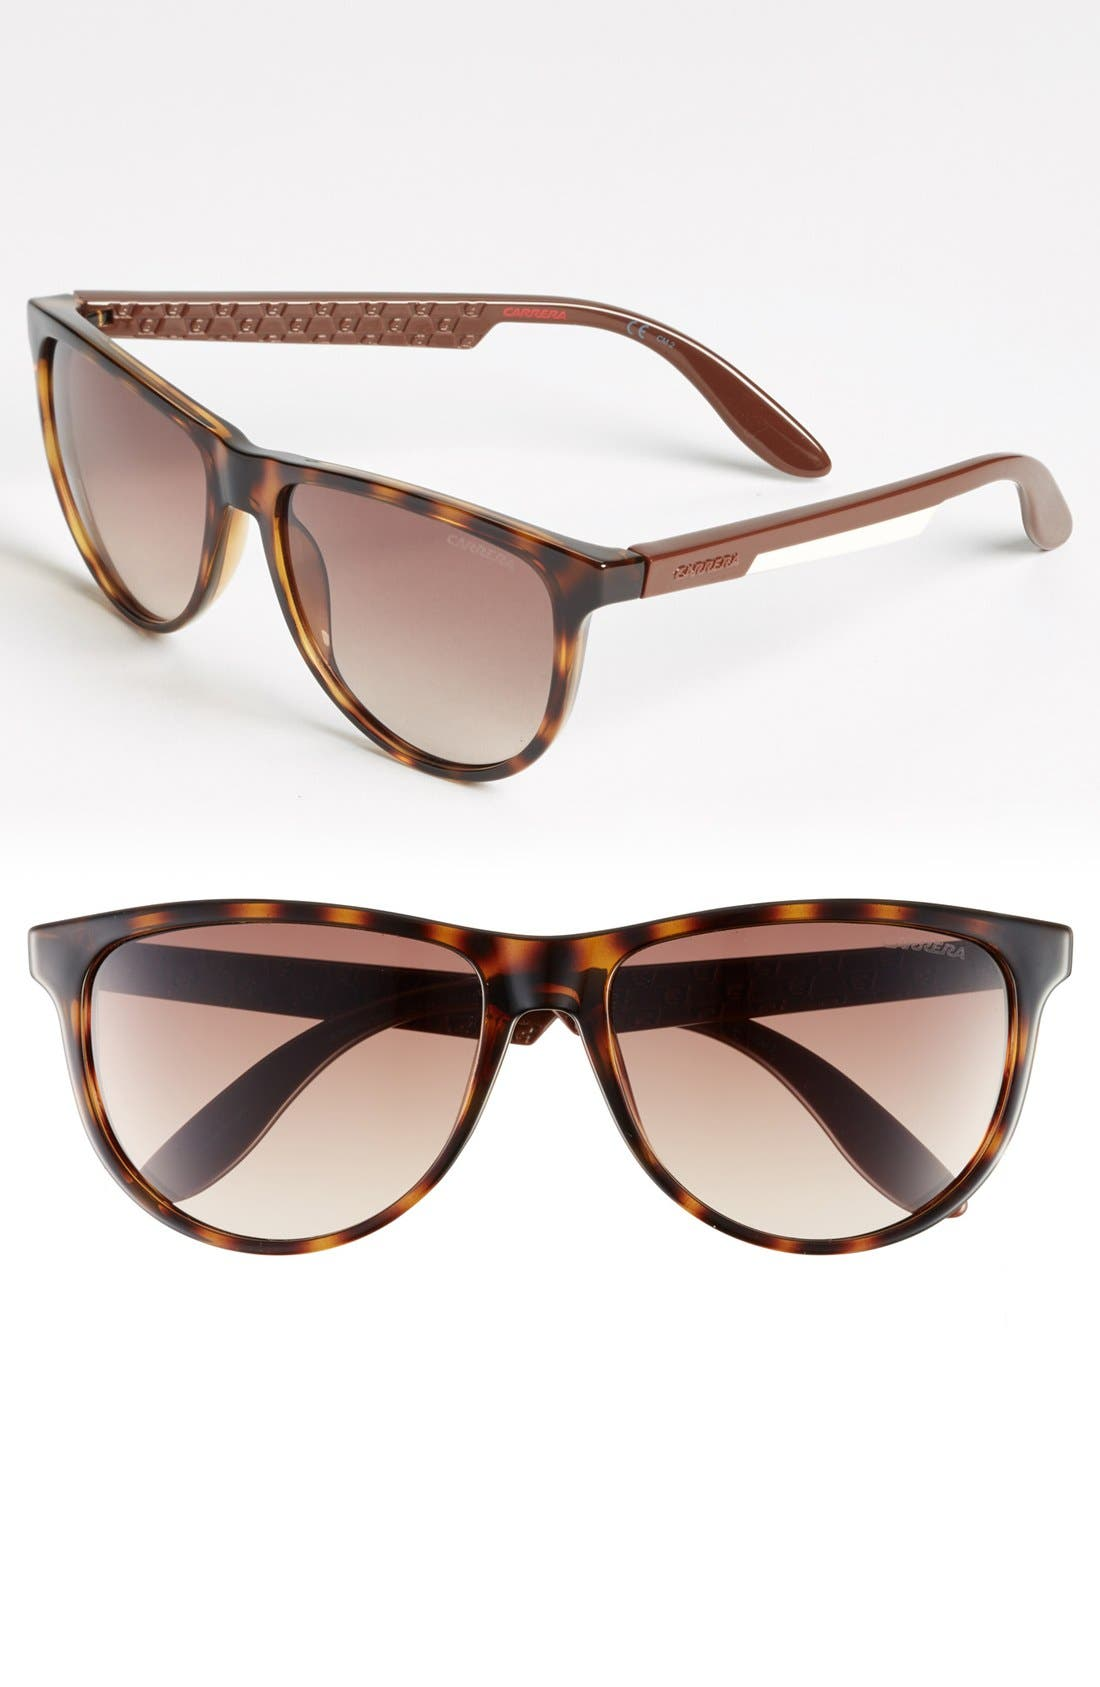 Main Image - Carrera Eyewear 56mm Retro Sunglasses